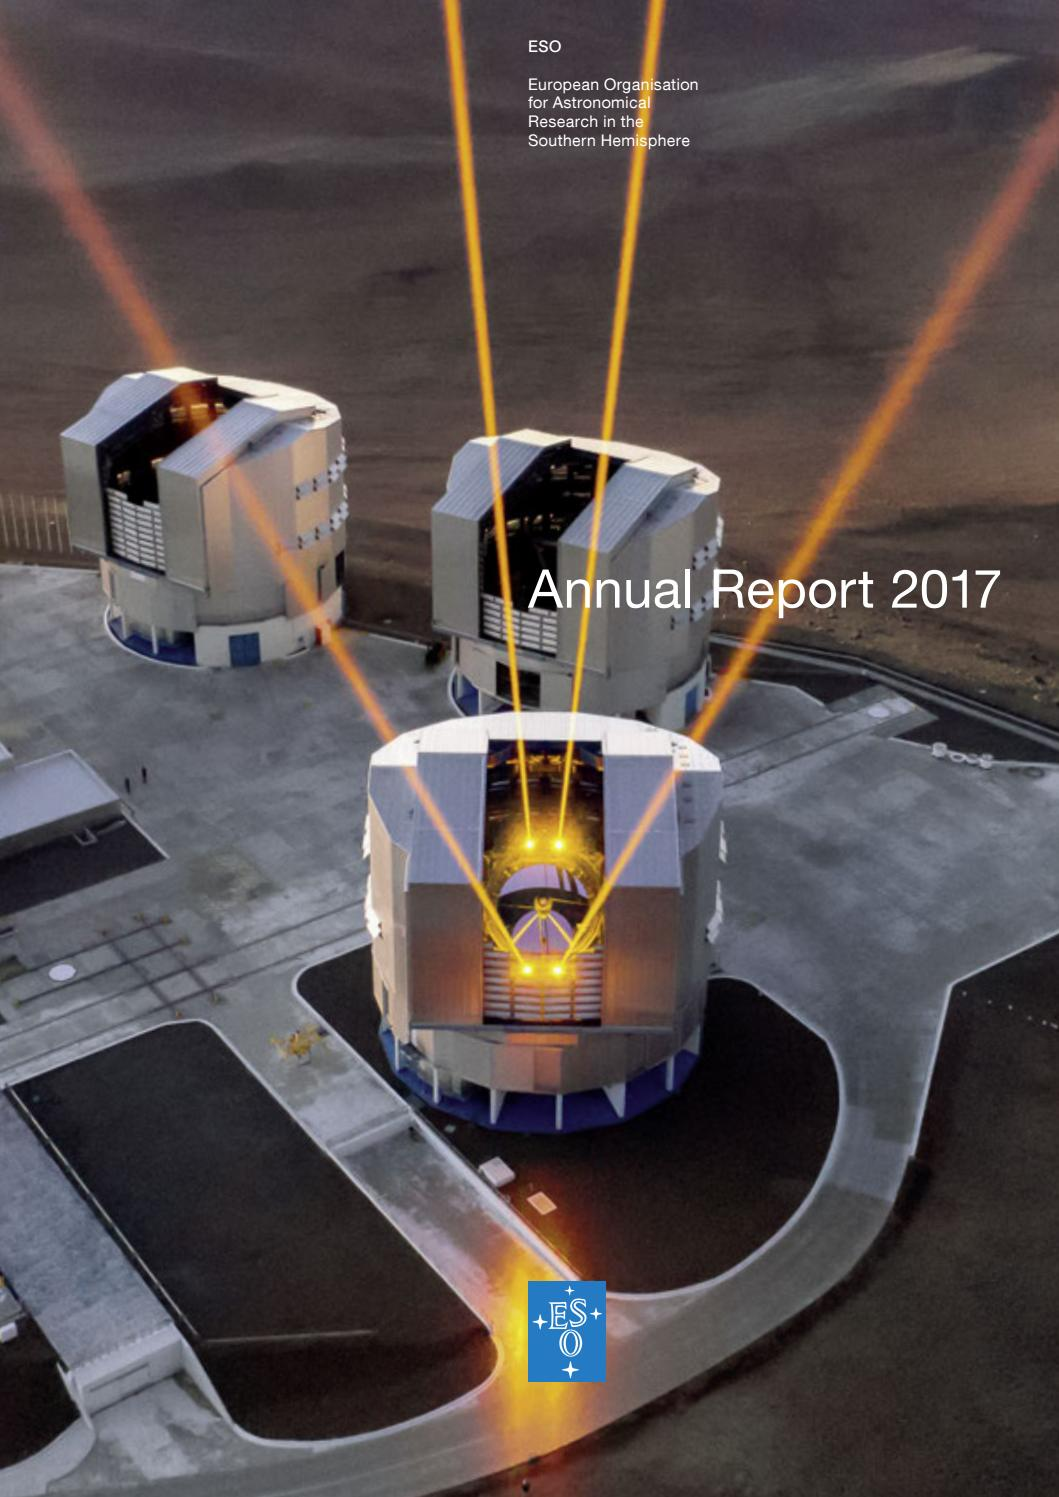 ESO Annual Report 2017 by European Southern Observatory - issuu